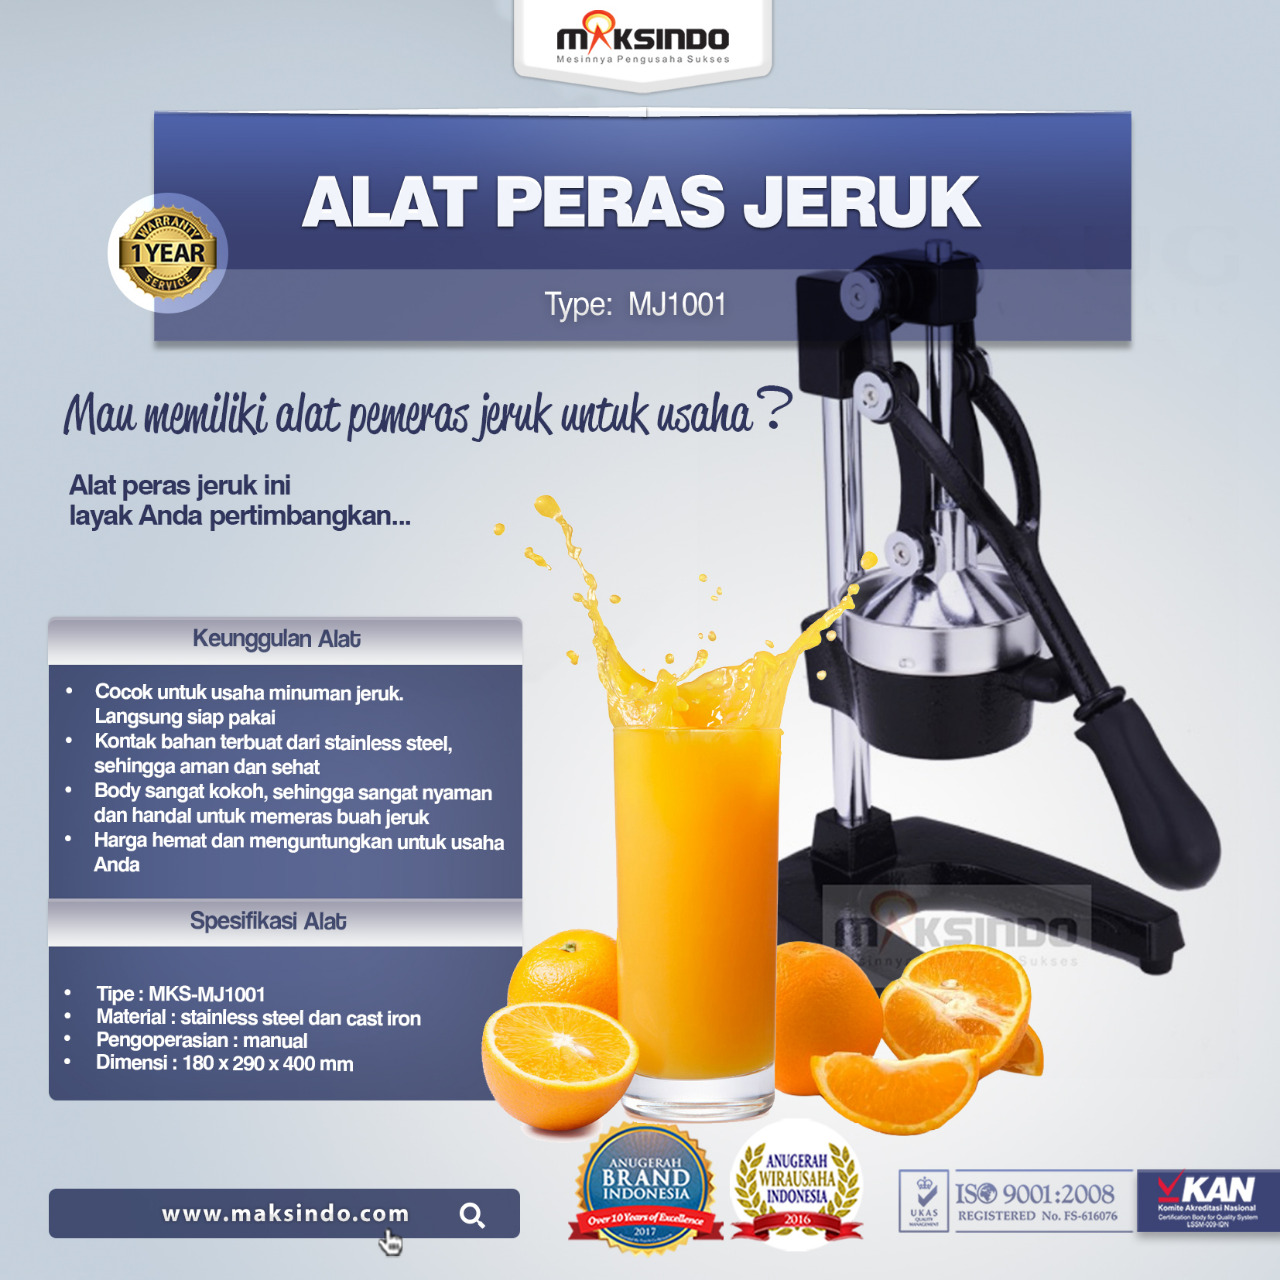 ... Jual Alat Pemeras Jeruk Manual (MJ1001) di Medan ...